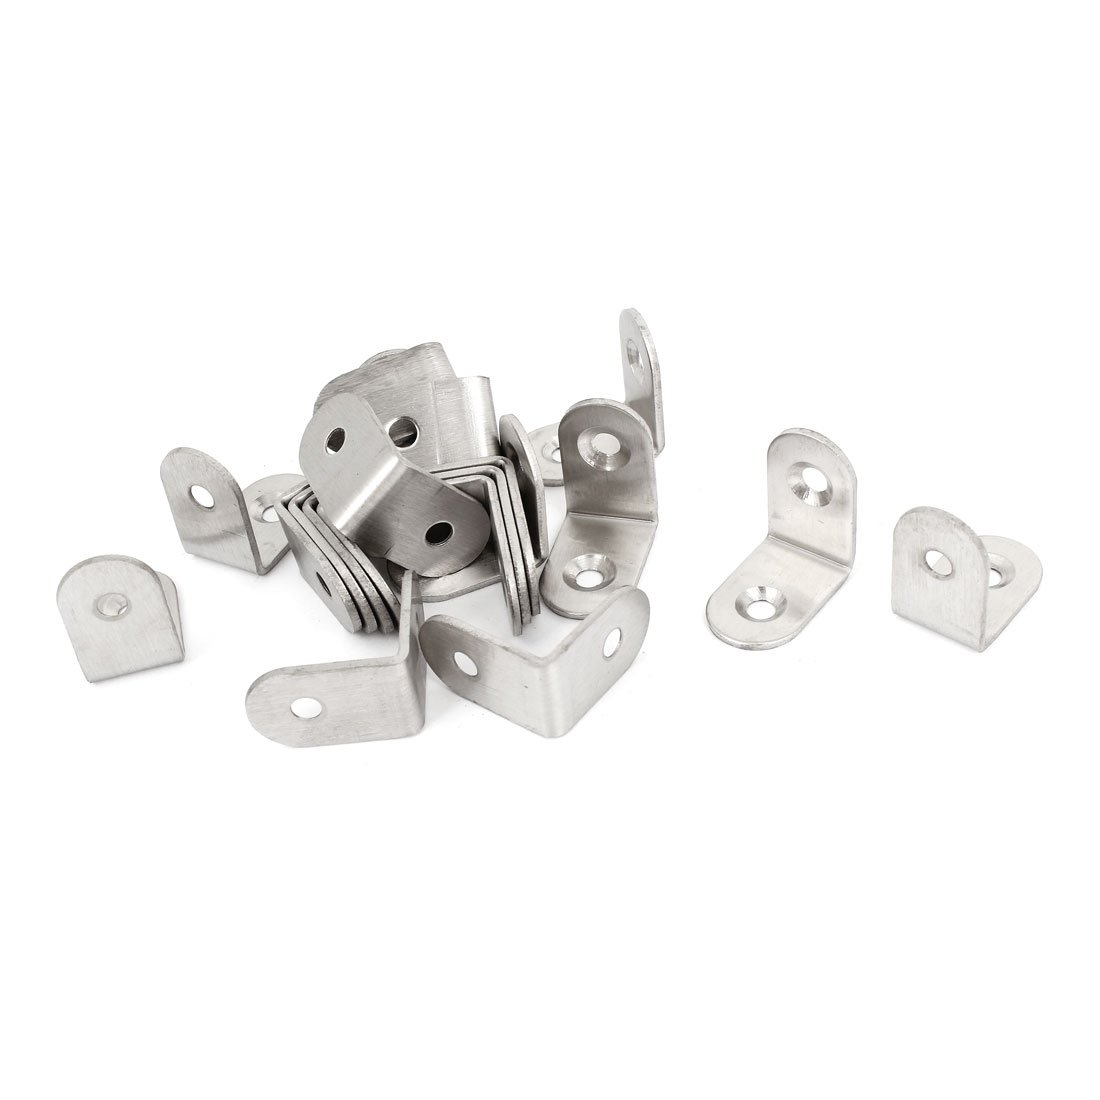 uxcell 20 Pcs 25mmx25mm Support Corner Brace Joint Right Angle Bracket by uxcell